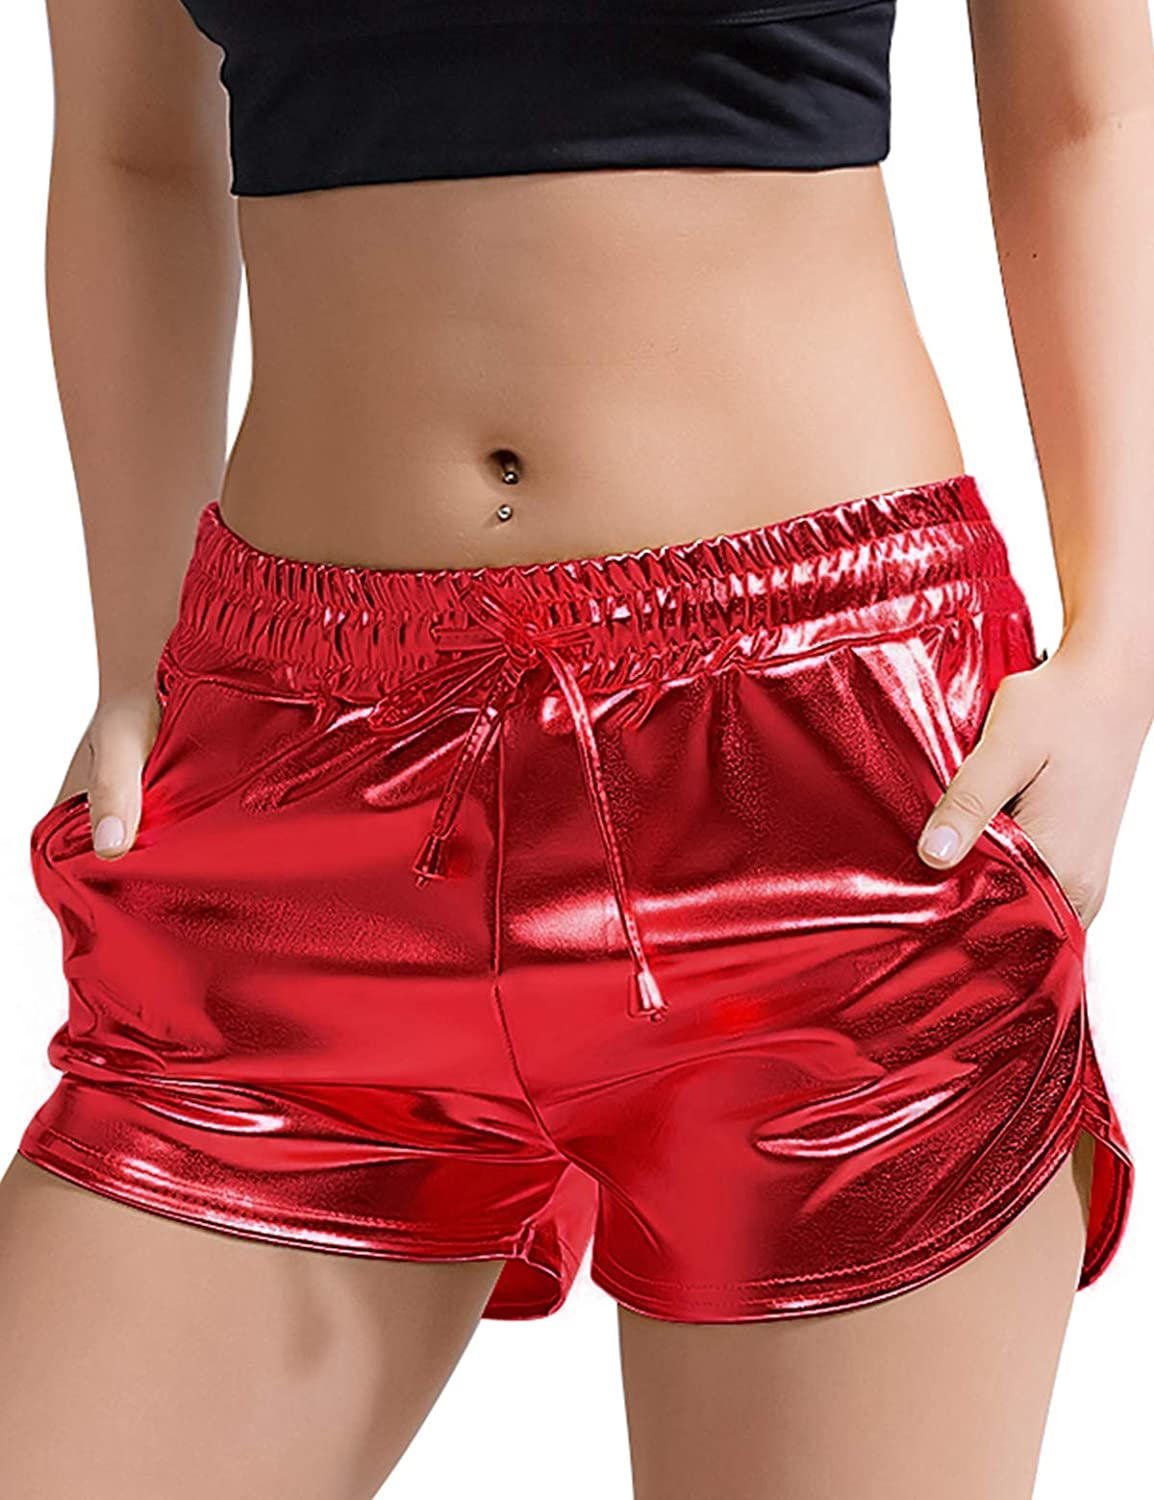 Peauty Metallic Shorts Yoga Hot Shiny with Elastic Drawstring Pants for Women